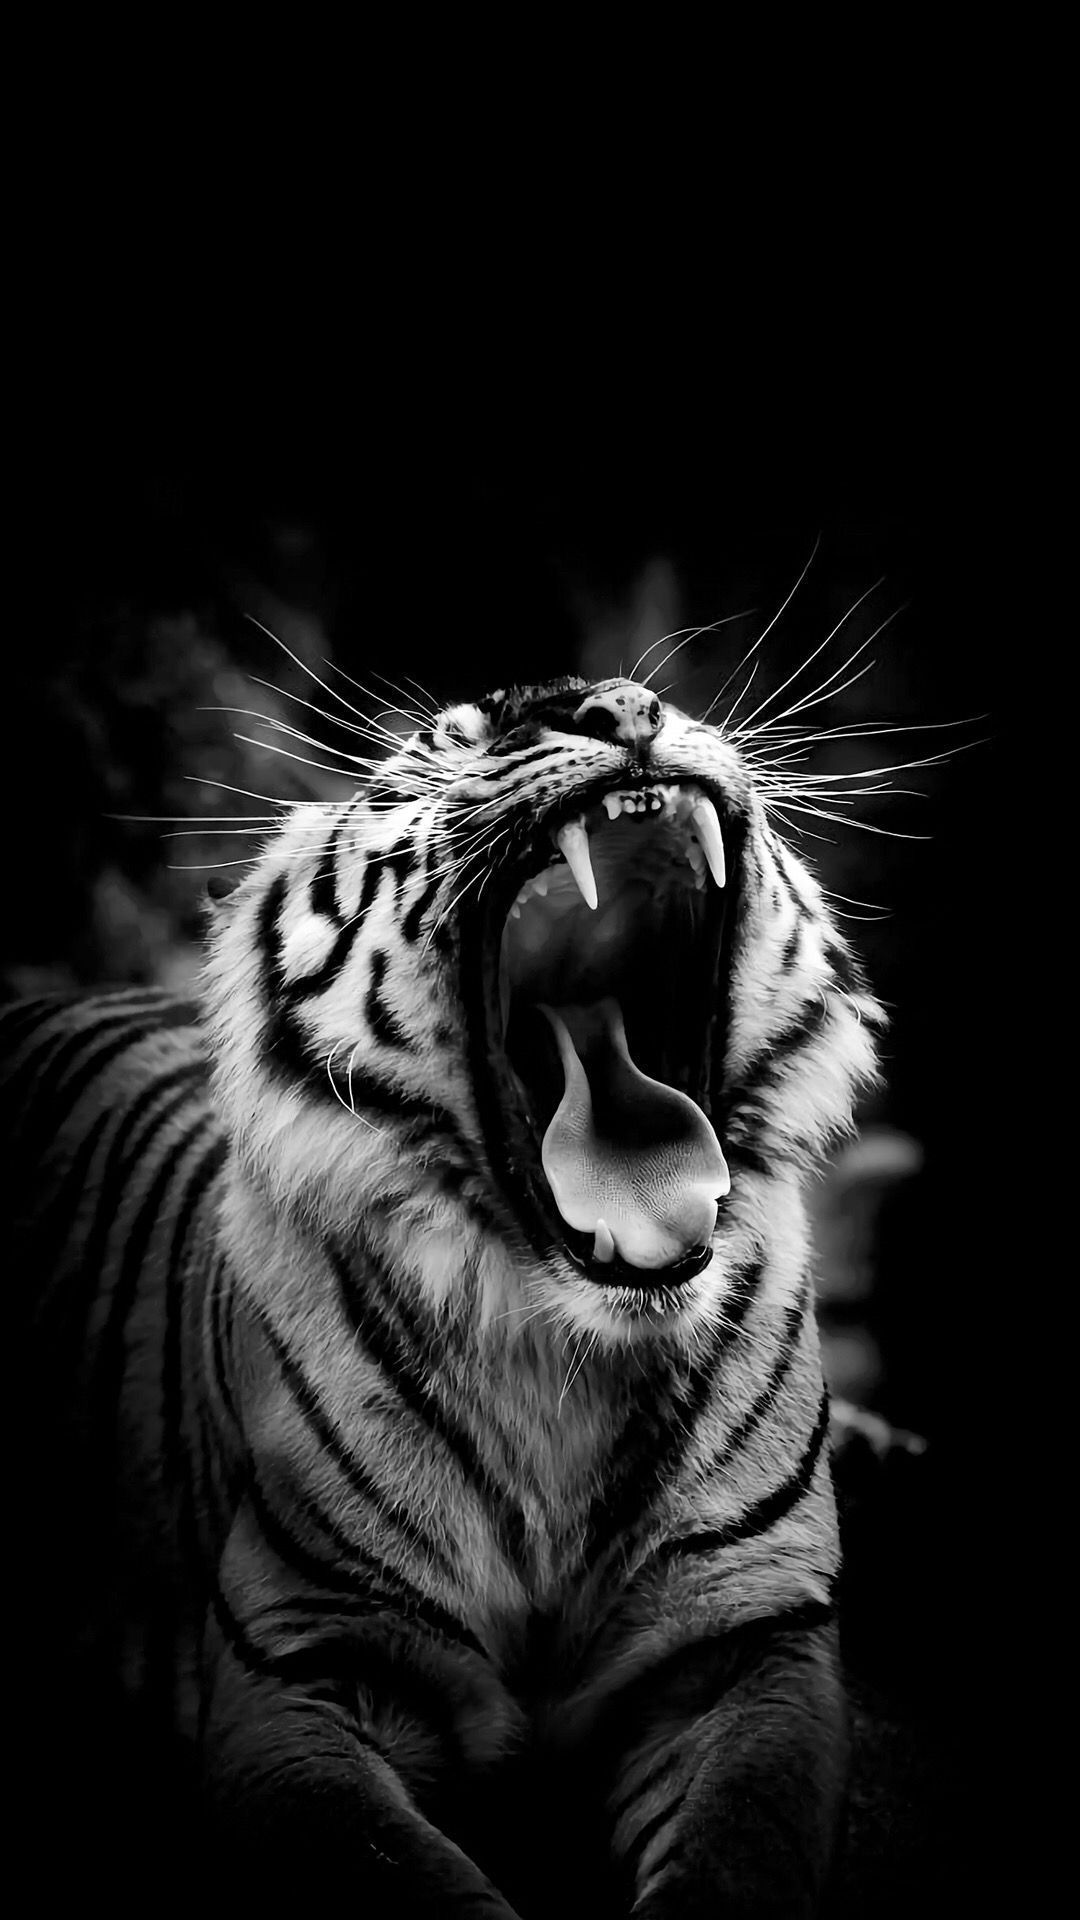 Black And White Tiger Image On High Resolution Wallpaper On Floral Wallpaper Black And White Ti Tiger Images Tiger Photography Wild Animal Wallpaper